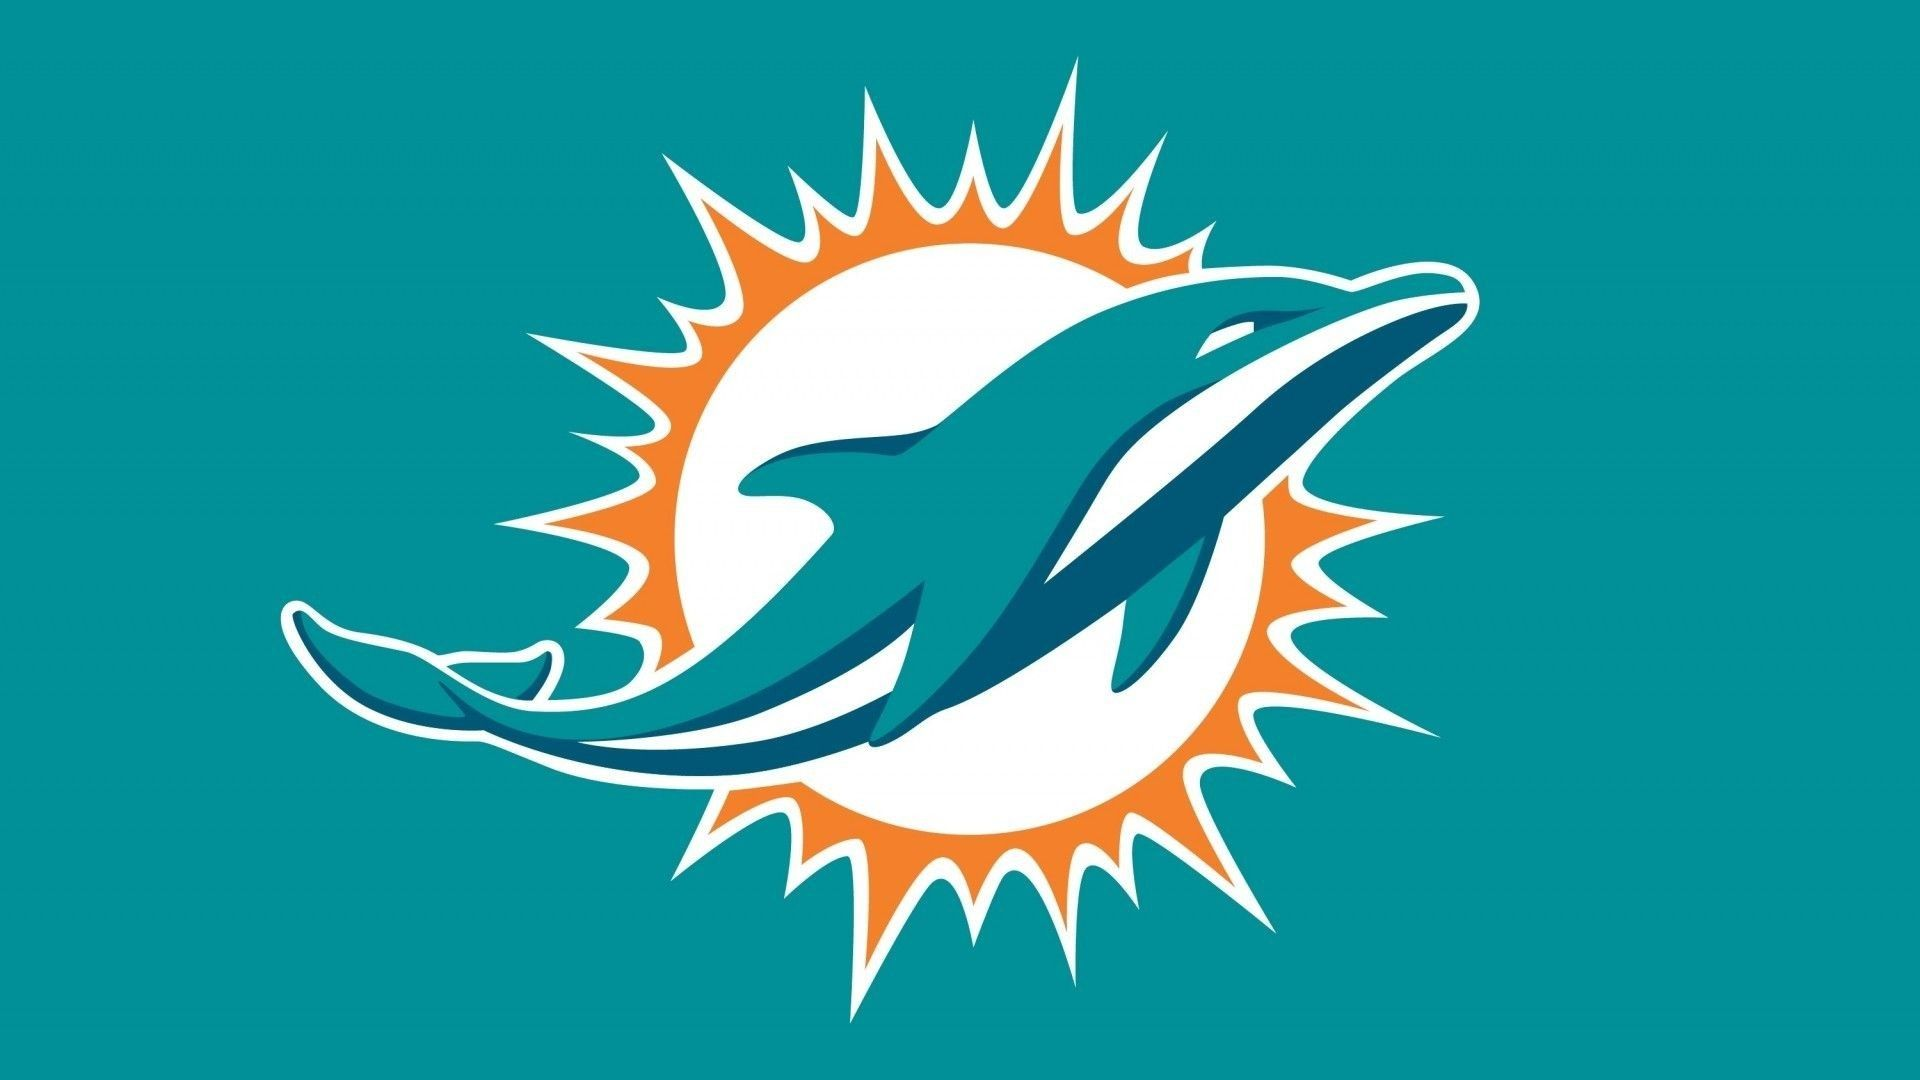 1920x1080 - Miami Dolphins Wallpapers 1